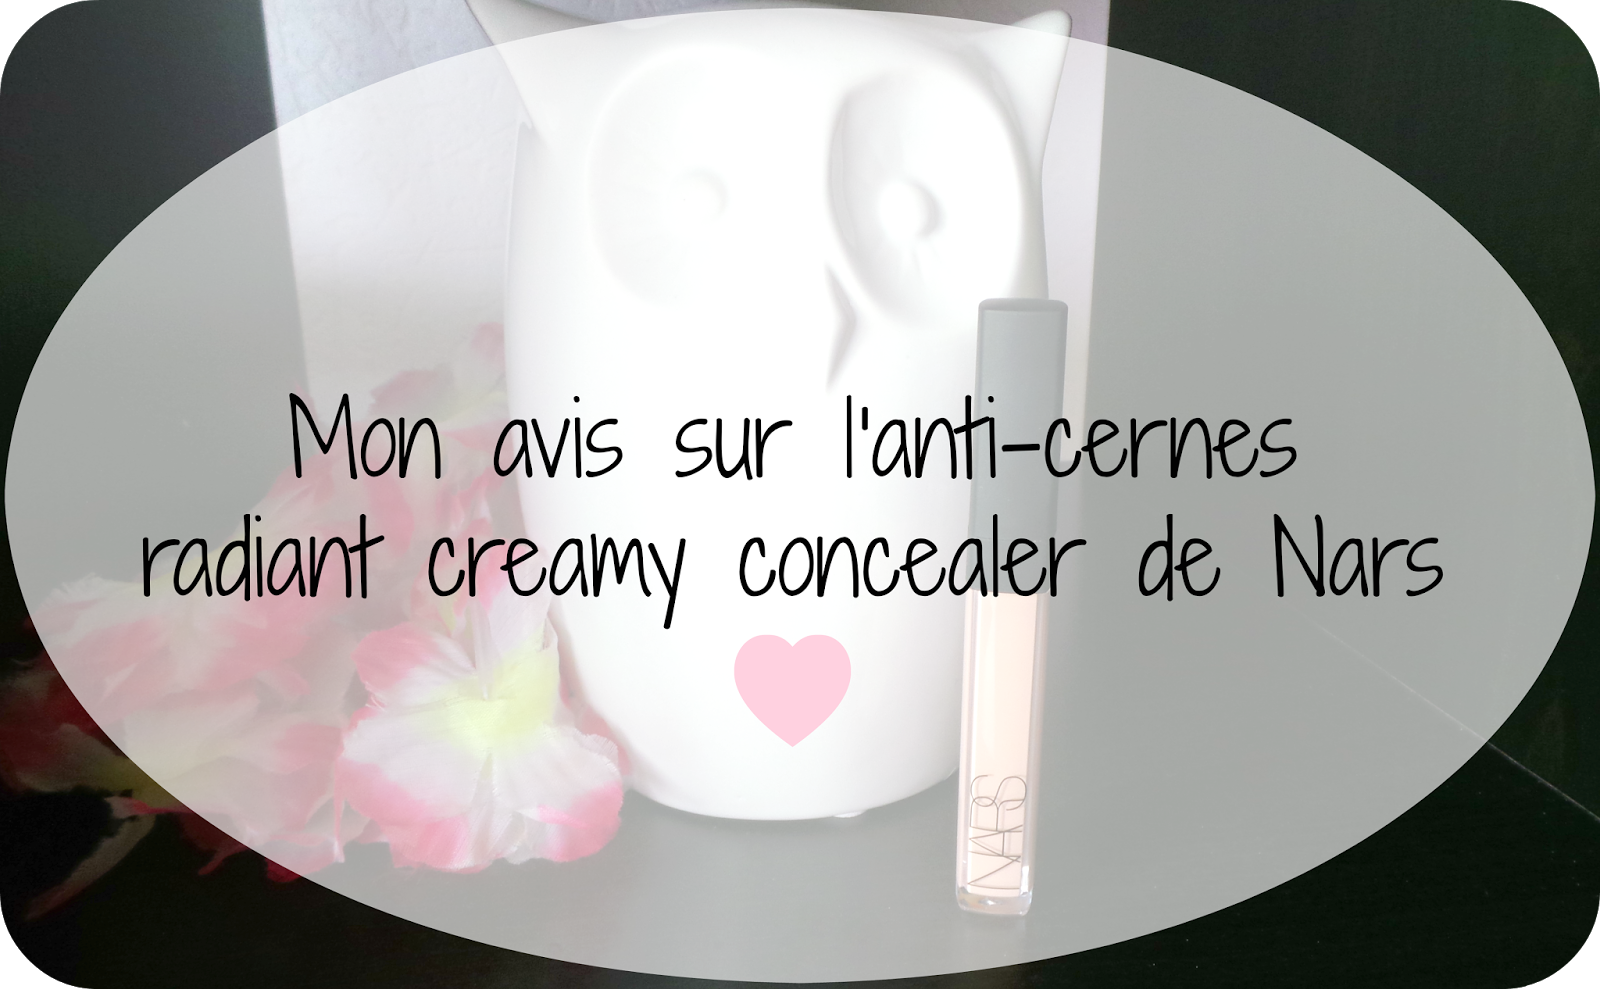 benebeautyblog mon avis sur l 39 anti cernes radiant creamy concealer de nars. Black Bedroom Furniture Sets. Home Design Ideas